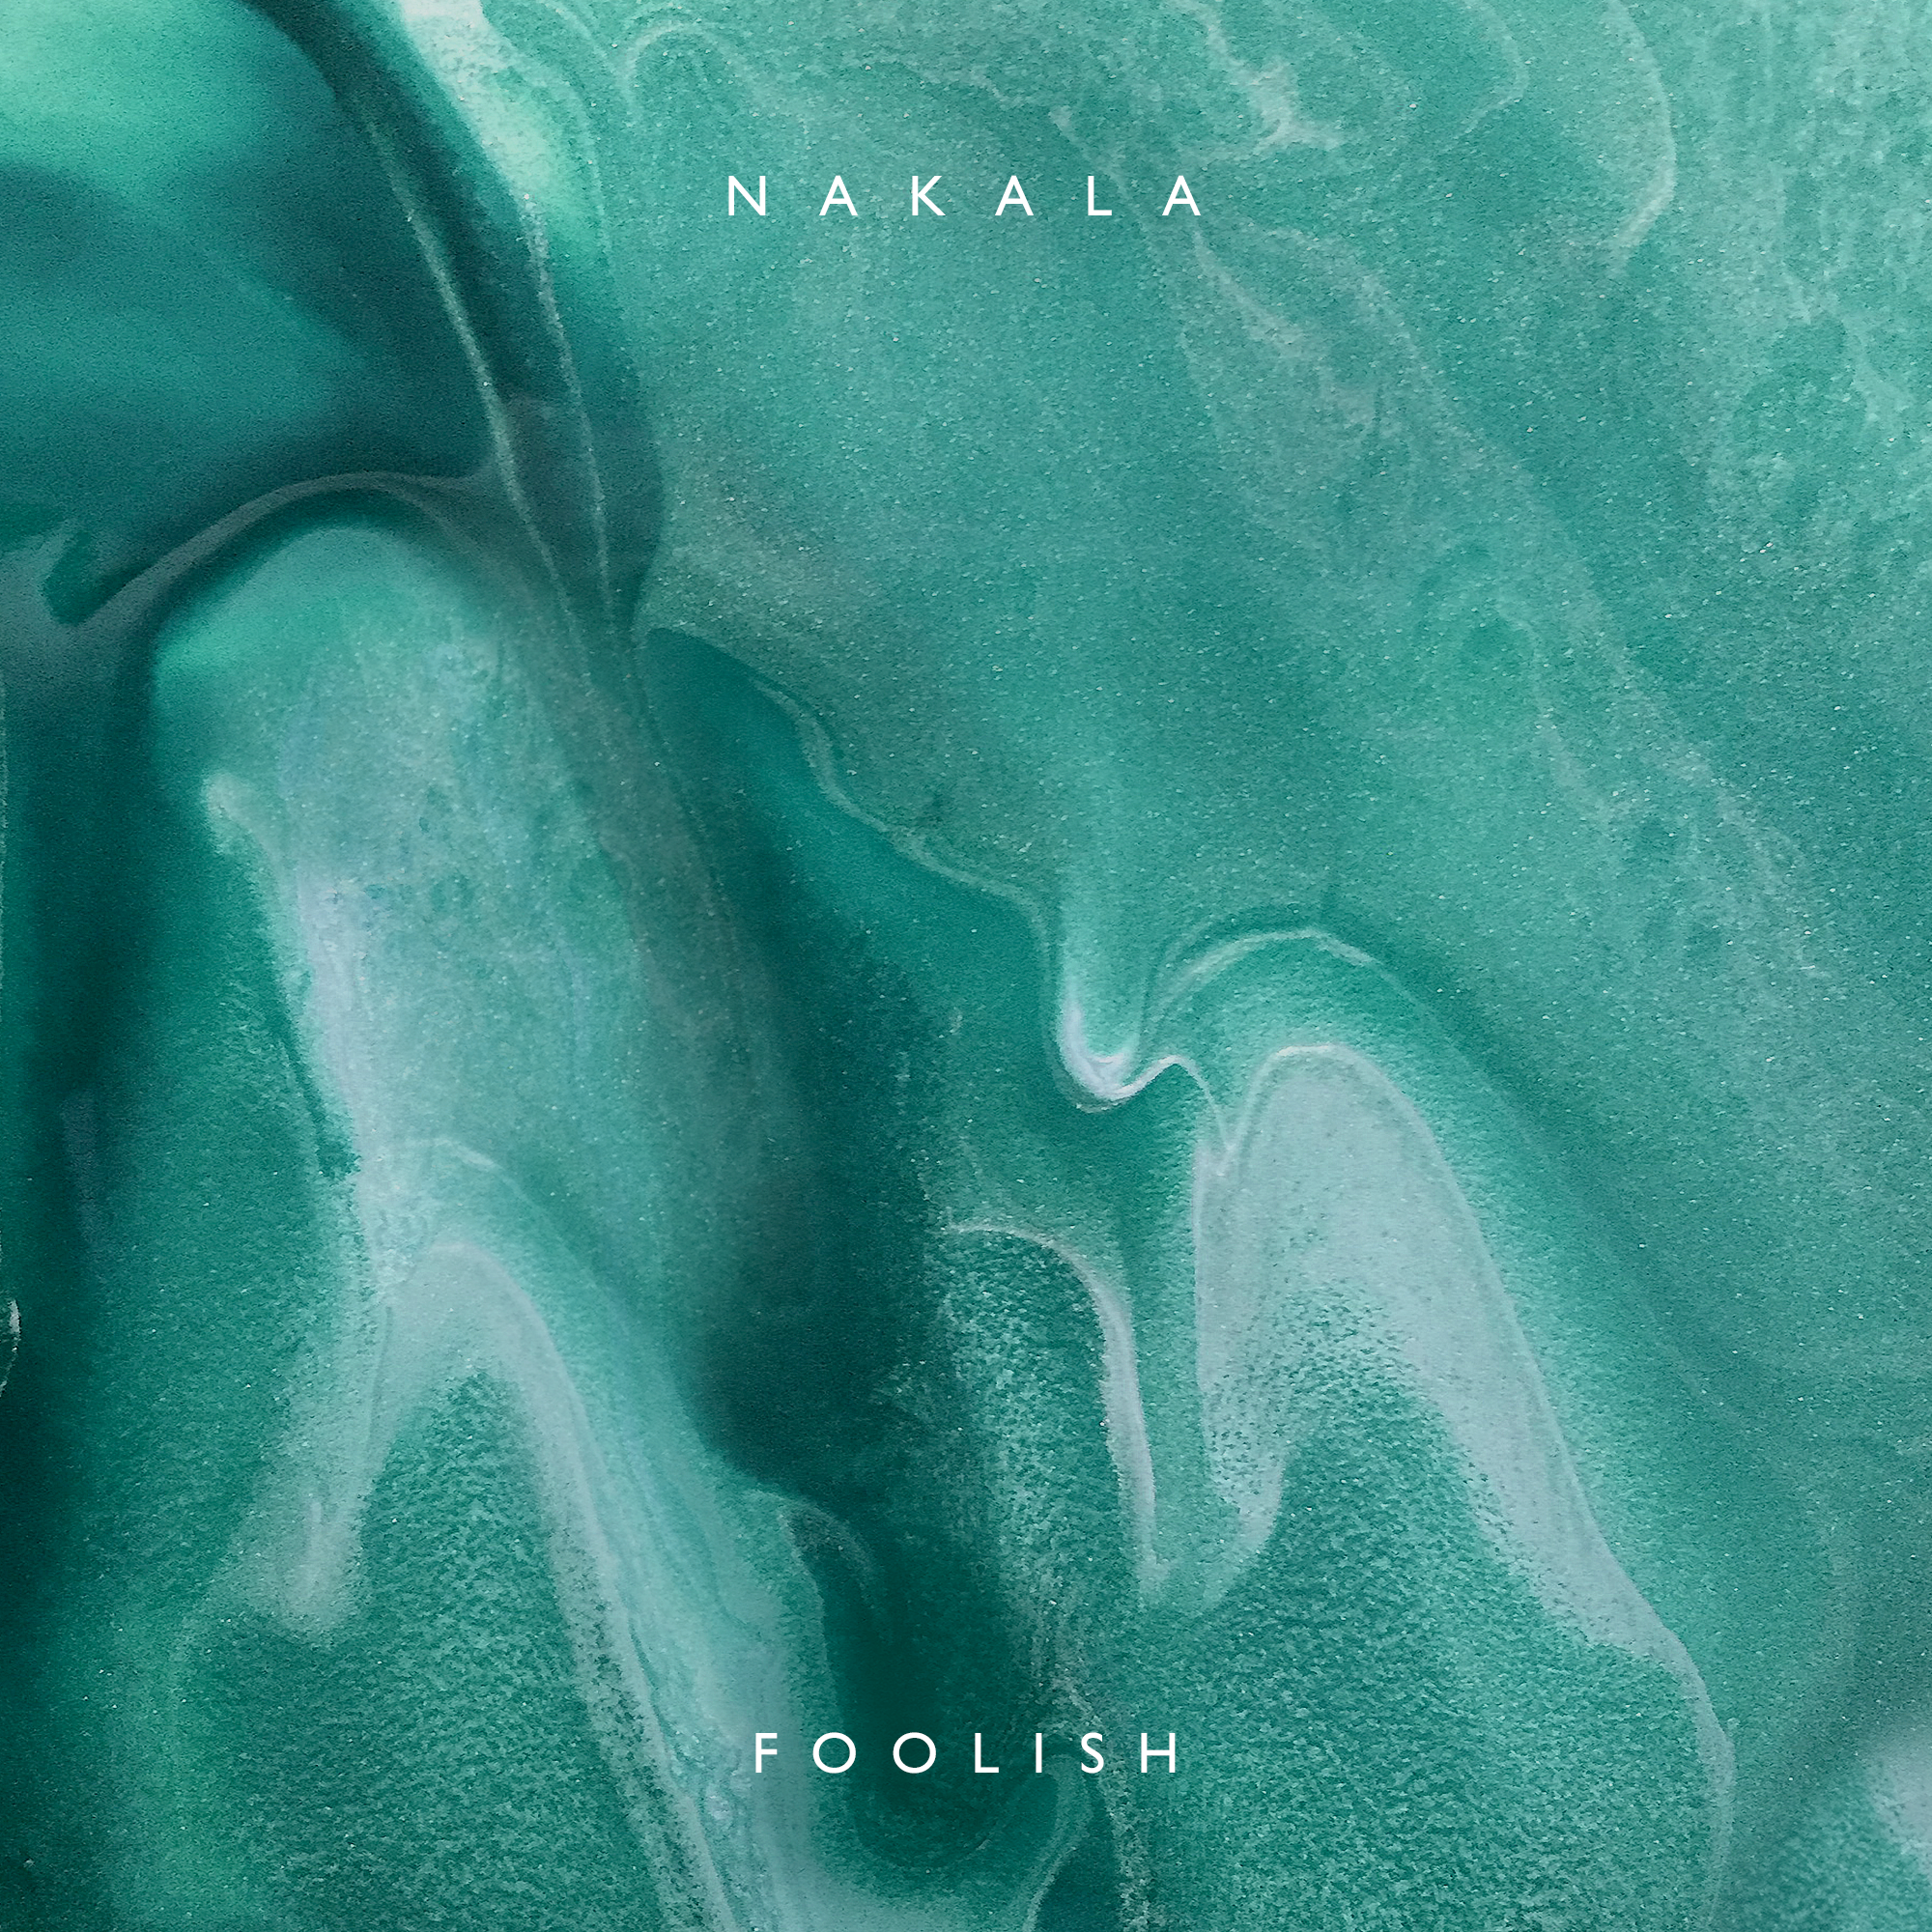 nakala foolish artwork final (1).png